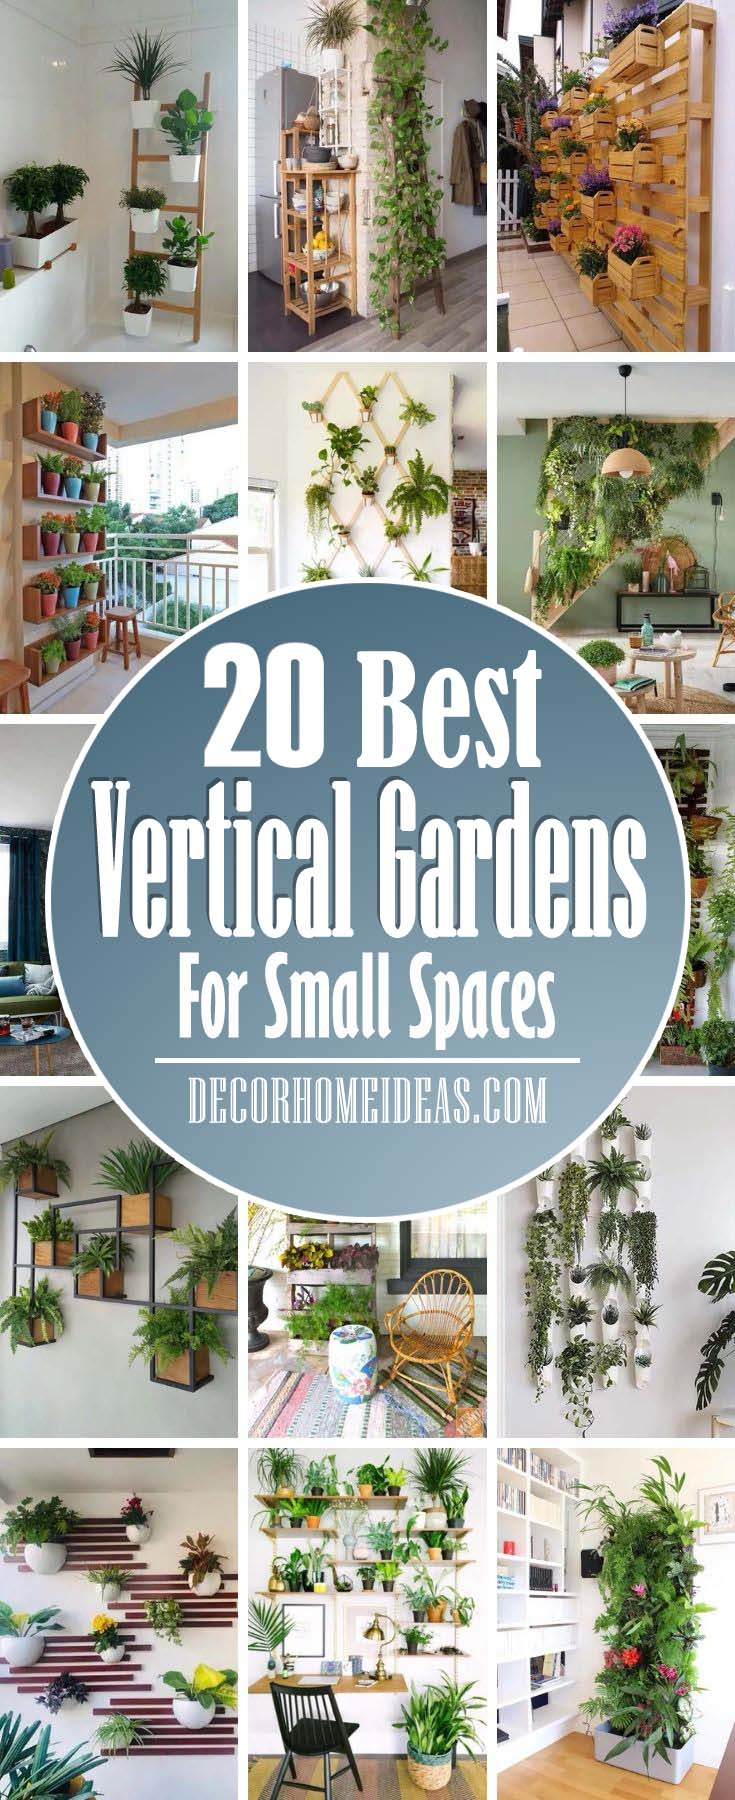 Vertical Garden Ideas For Small Spaces. These gorgeous vertical gardening ideas for small spaces are the best way to get inspired. Whether you want ideas for hanging gardens, wall mounted planters, vertical containers, or vine supports, these fabulous DIY vertical garden designs will inspire you! #decorhomeideas